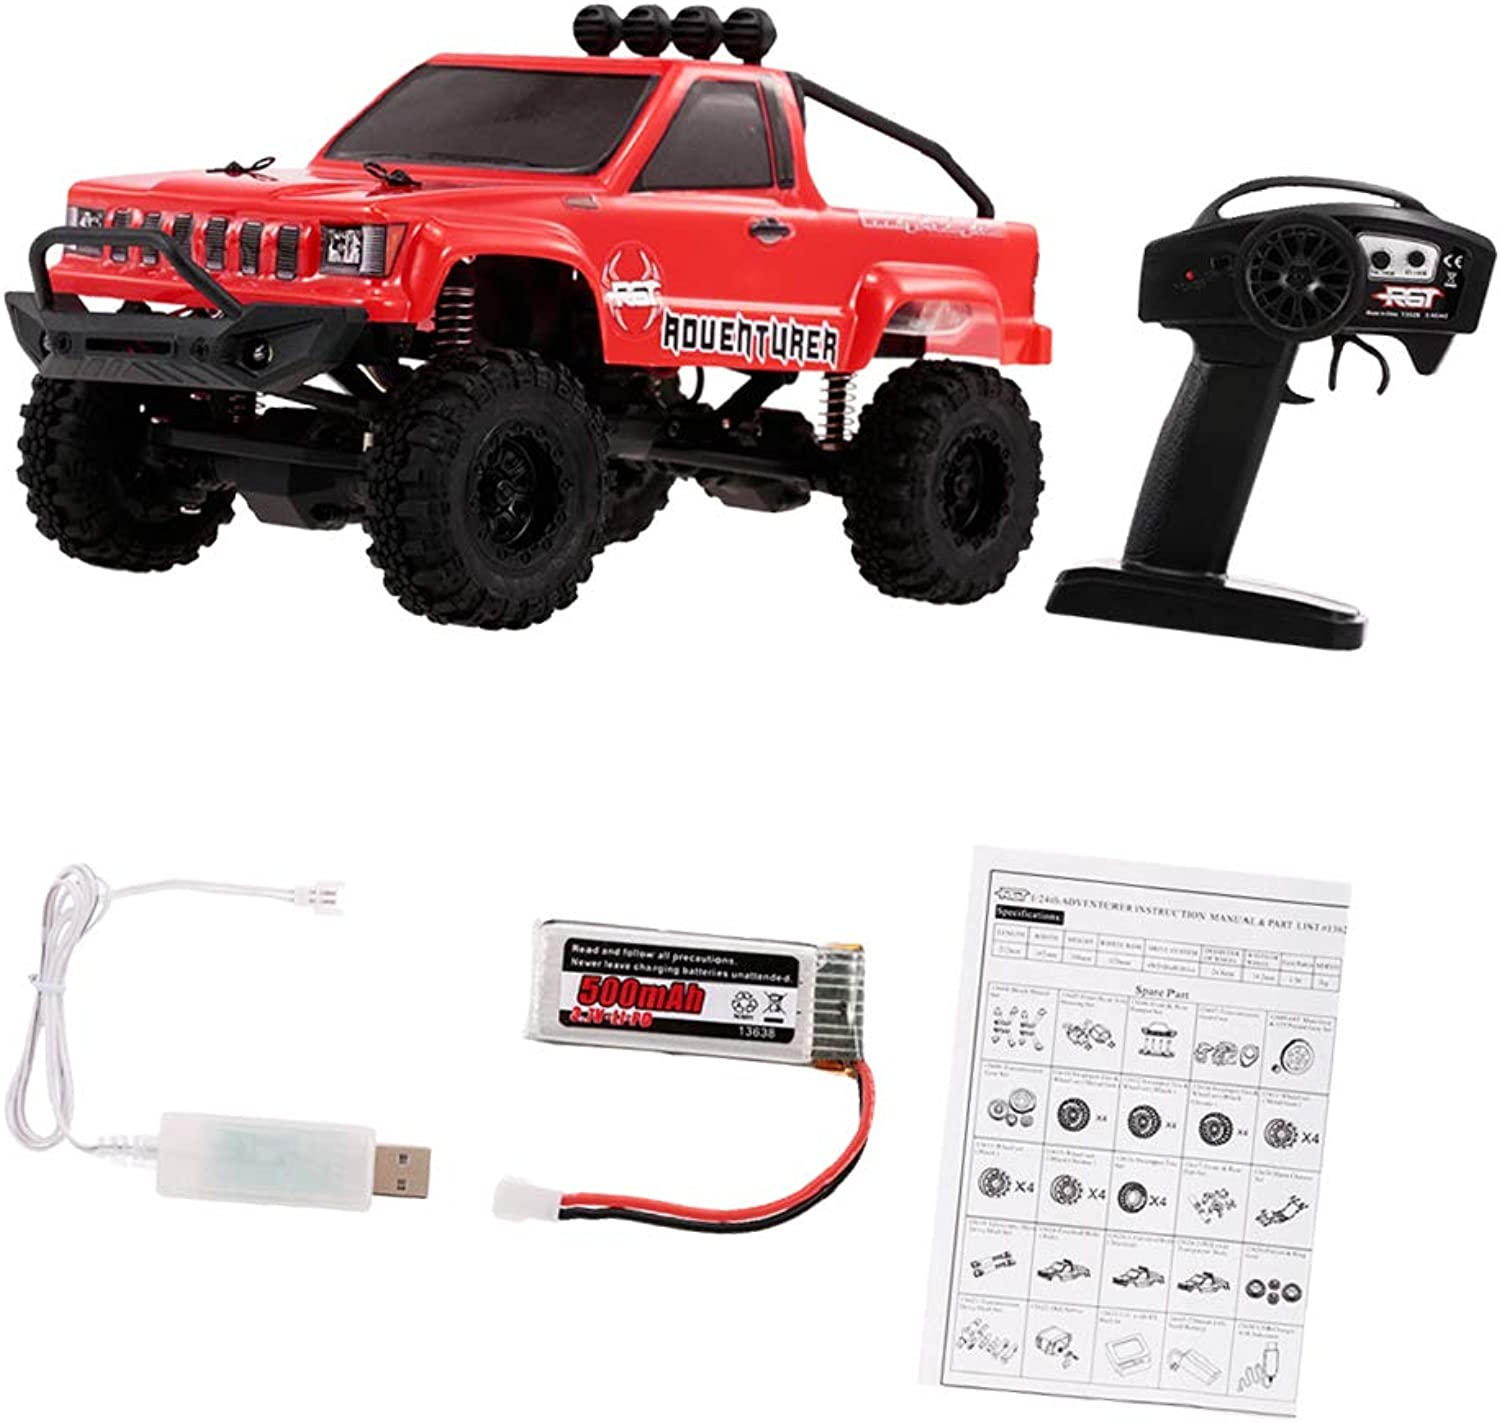 Fityle RGT Remote Control Pickup Truck 1 24 Scale 4WD OffRoad Car Ready to Run RTR  Red